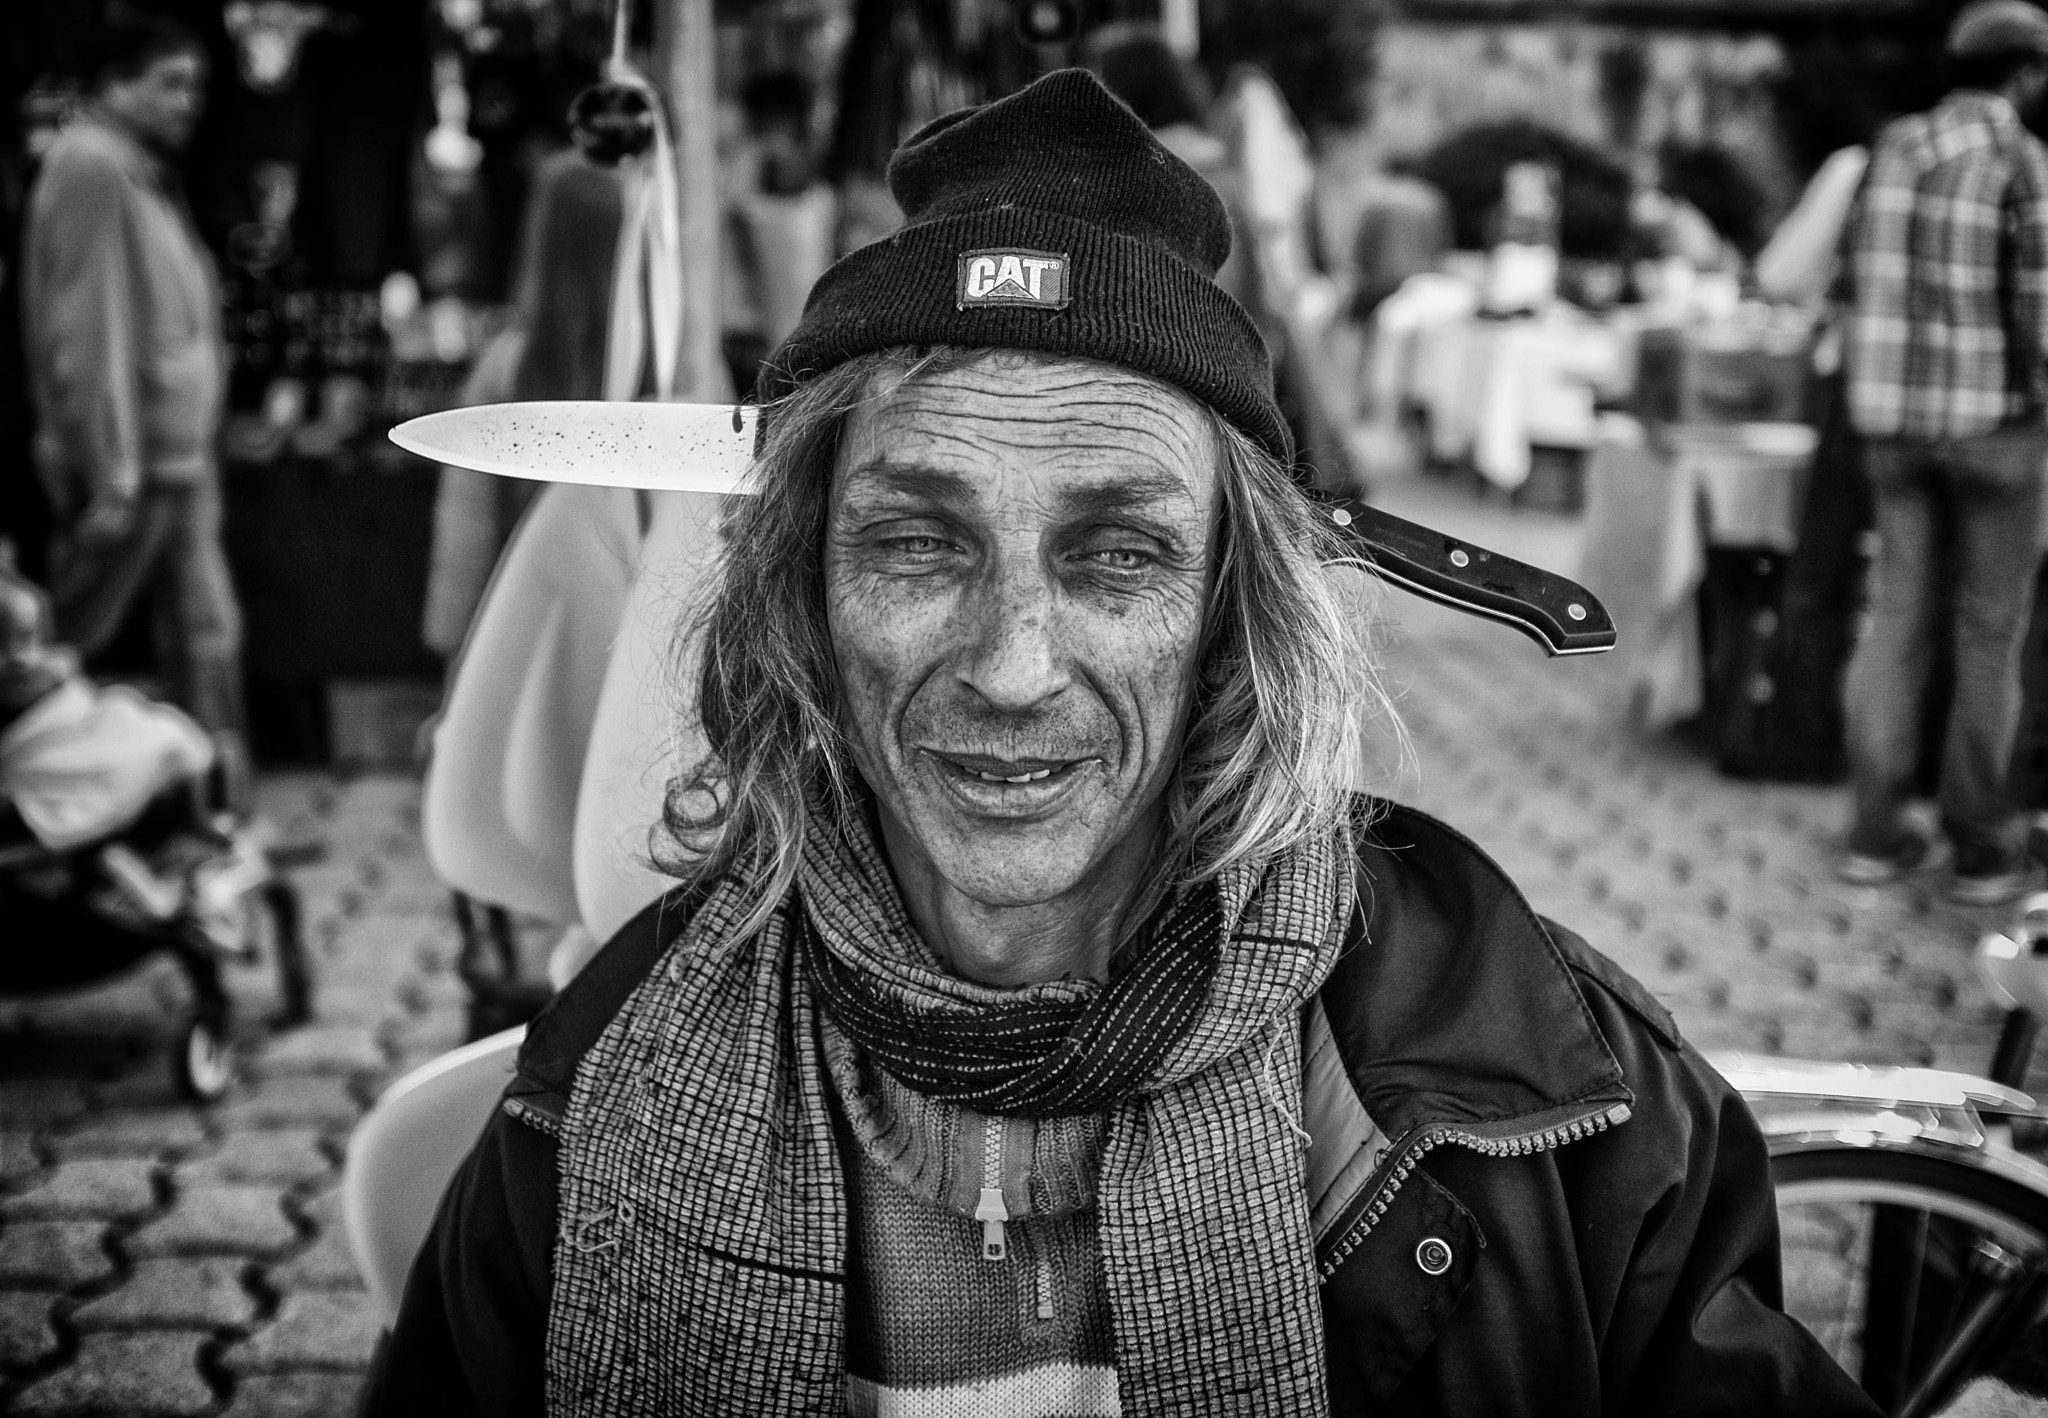 Photograph Walking dead by skamelone on 500px